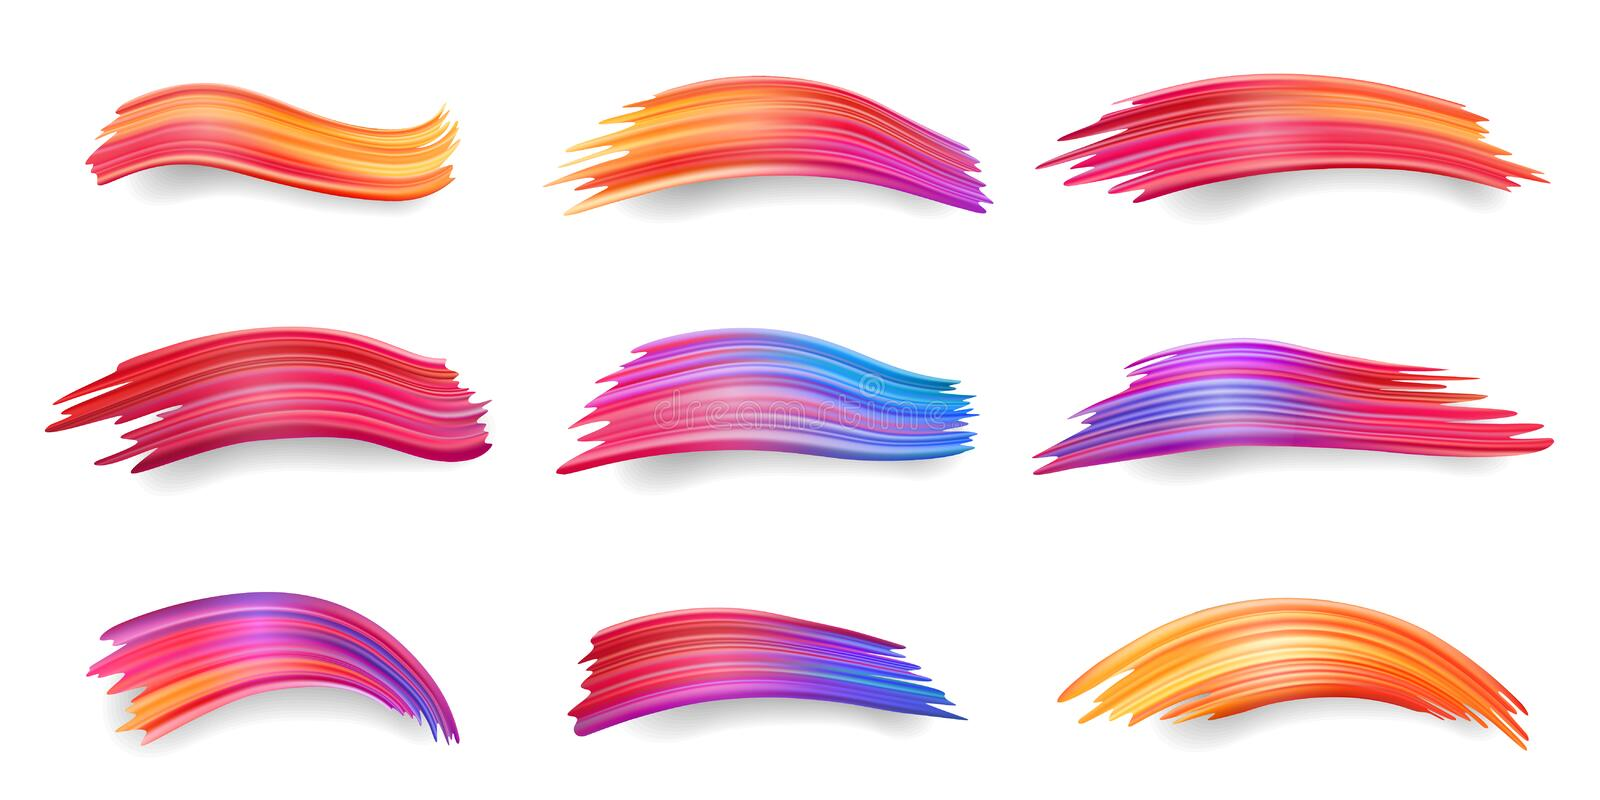 Gradient smears or colorful brushstrokes, paint stock illustration